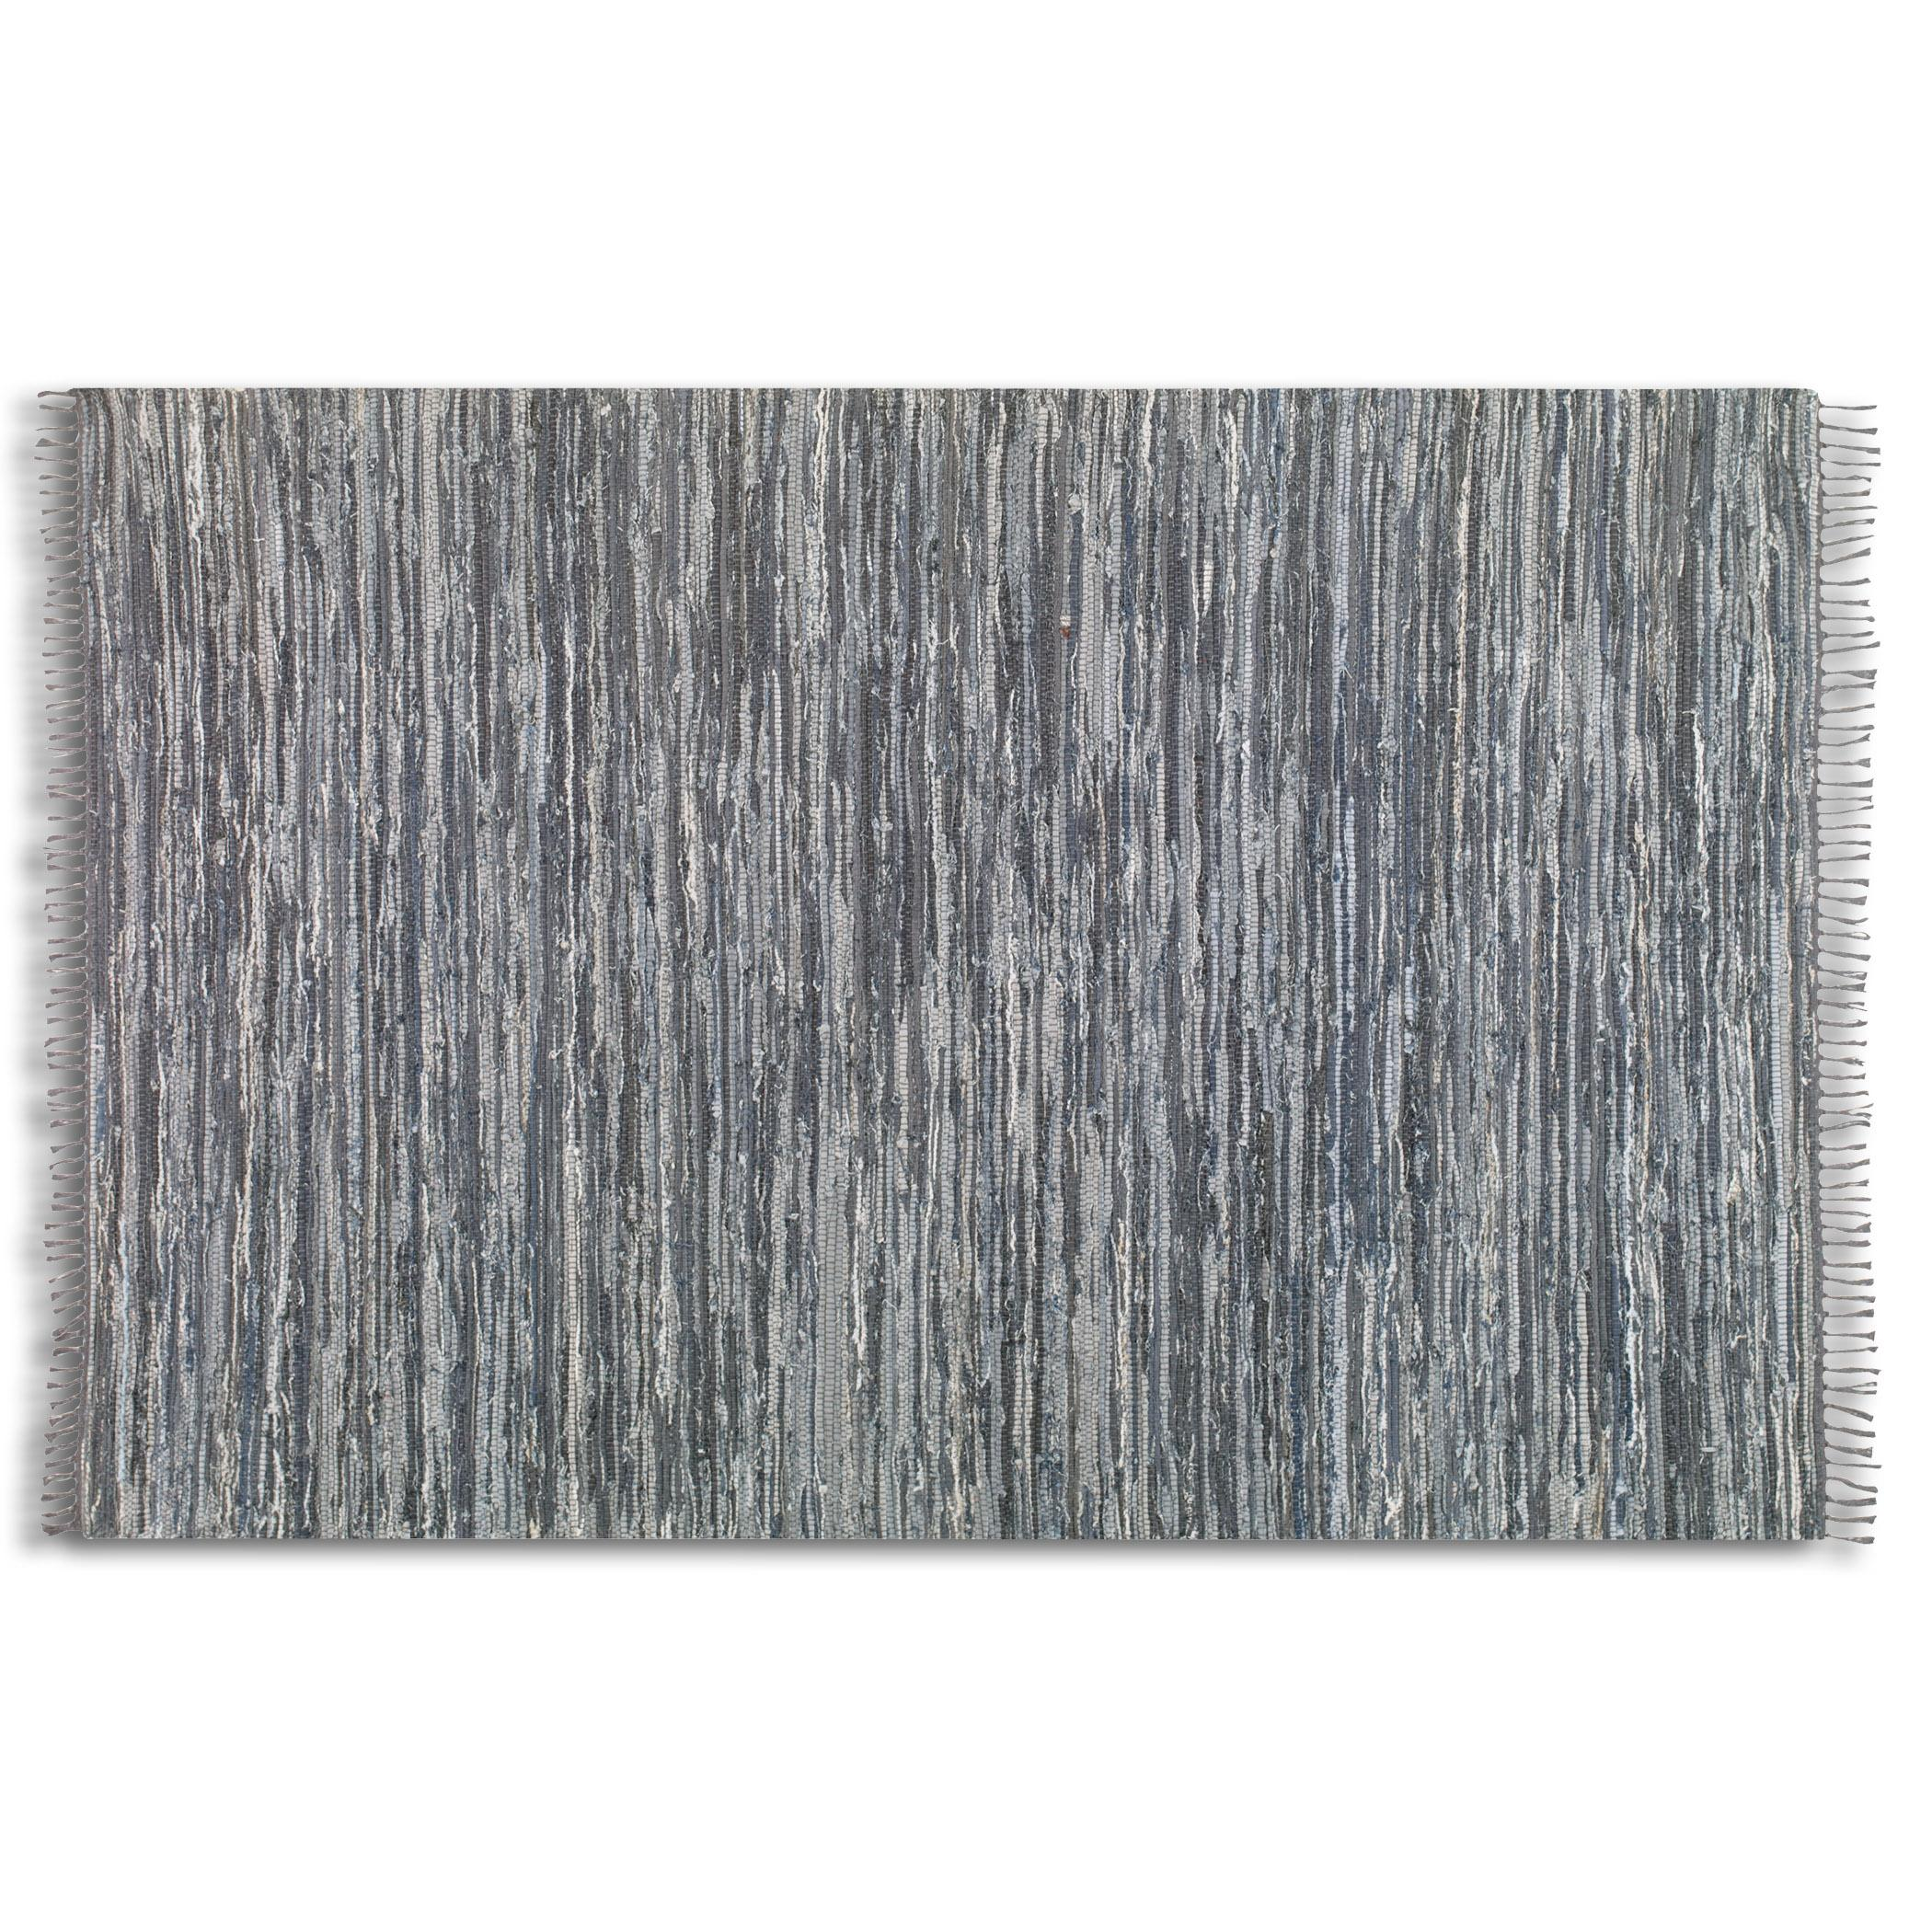 Uttermost Rugs Stockton 8 X 10 Rug - Blue - Item Number: 71057-8